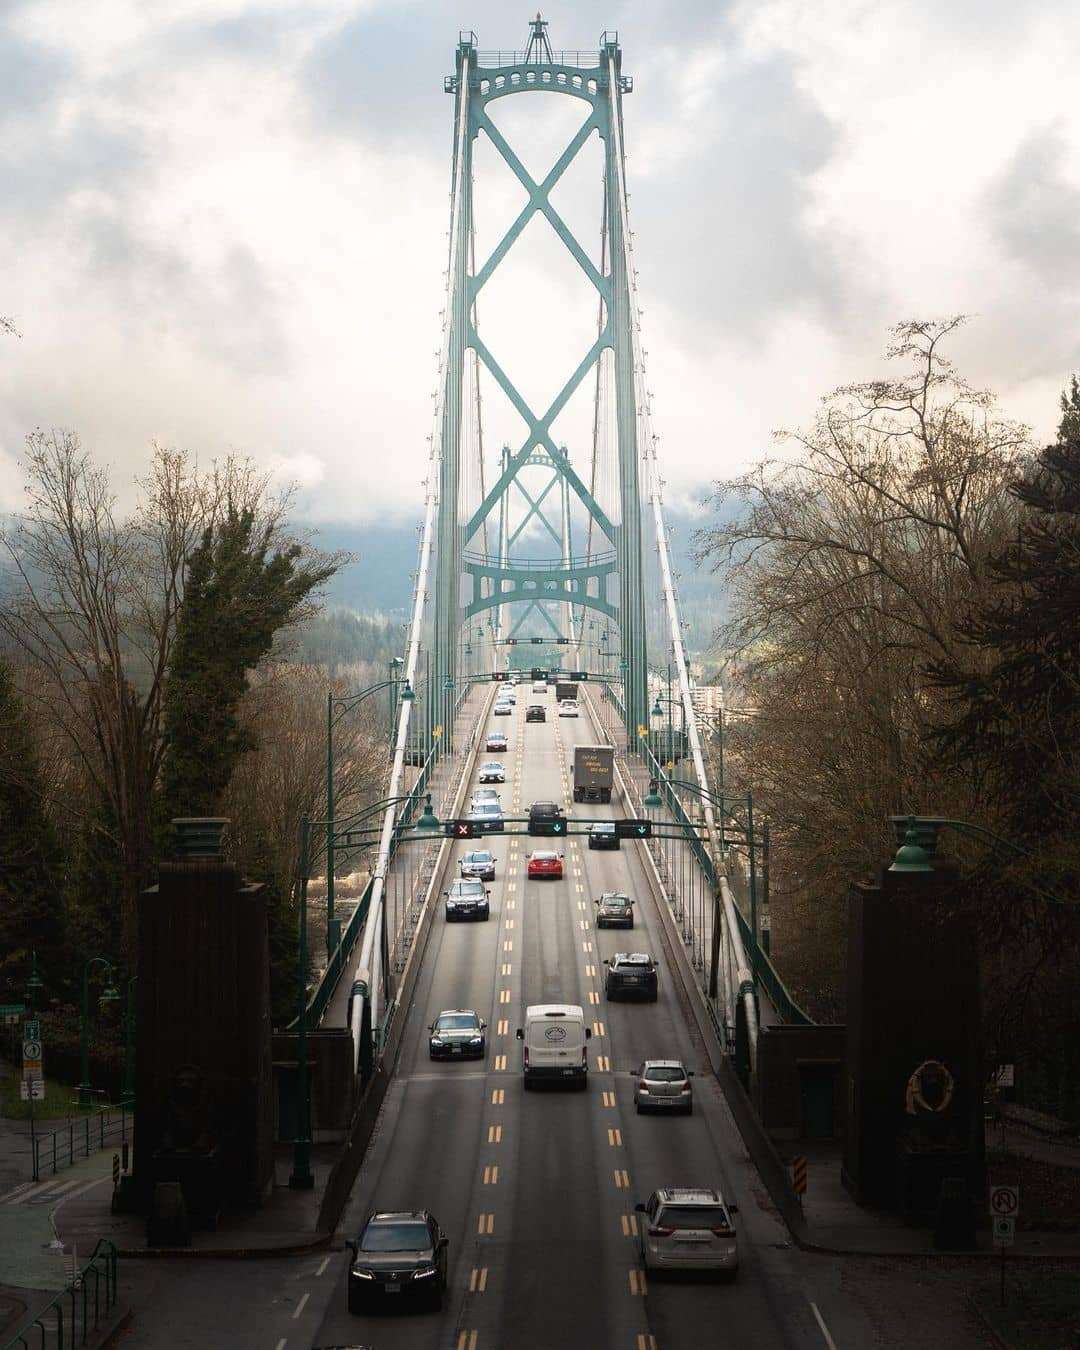 lonsdale quay travel guide -lions gate bridge with cars moving